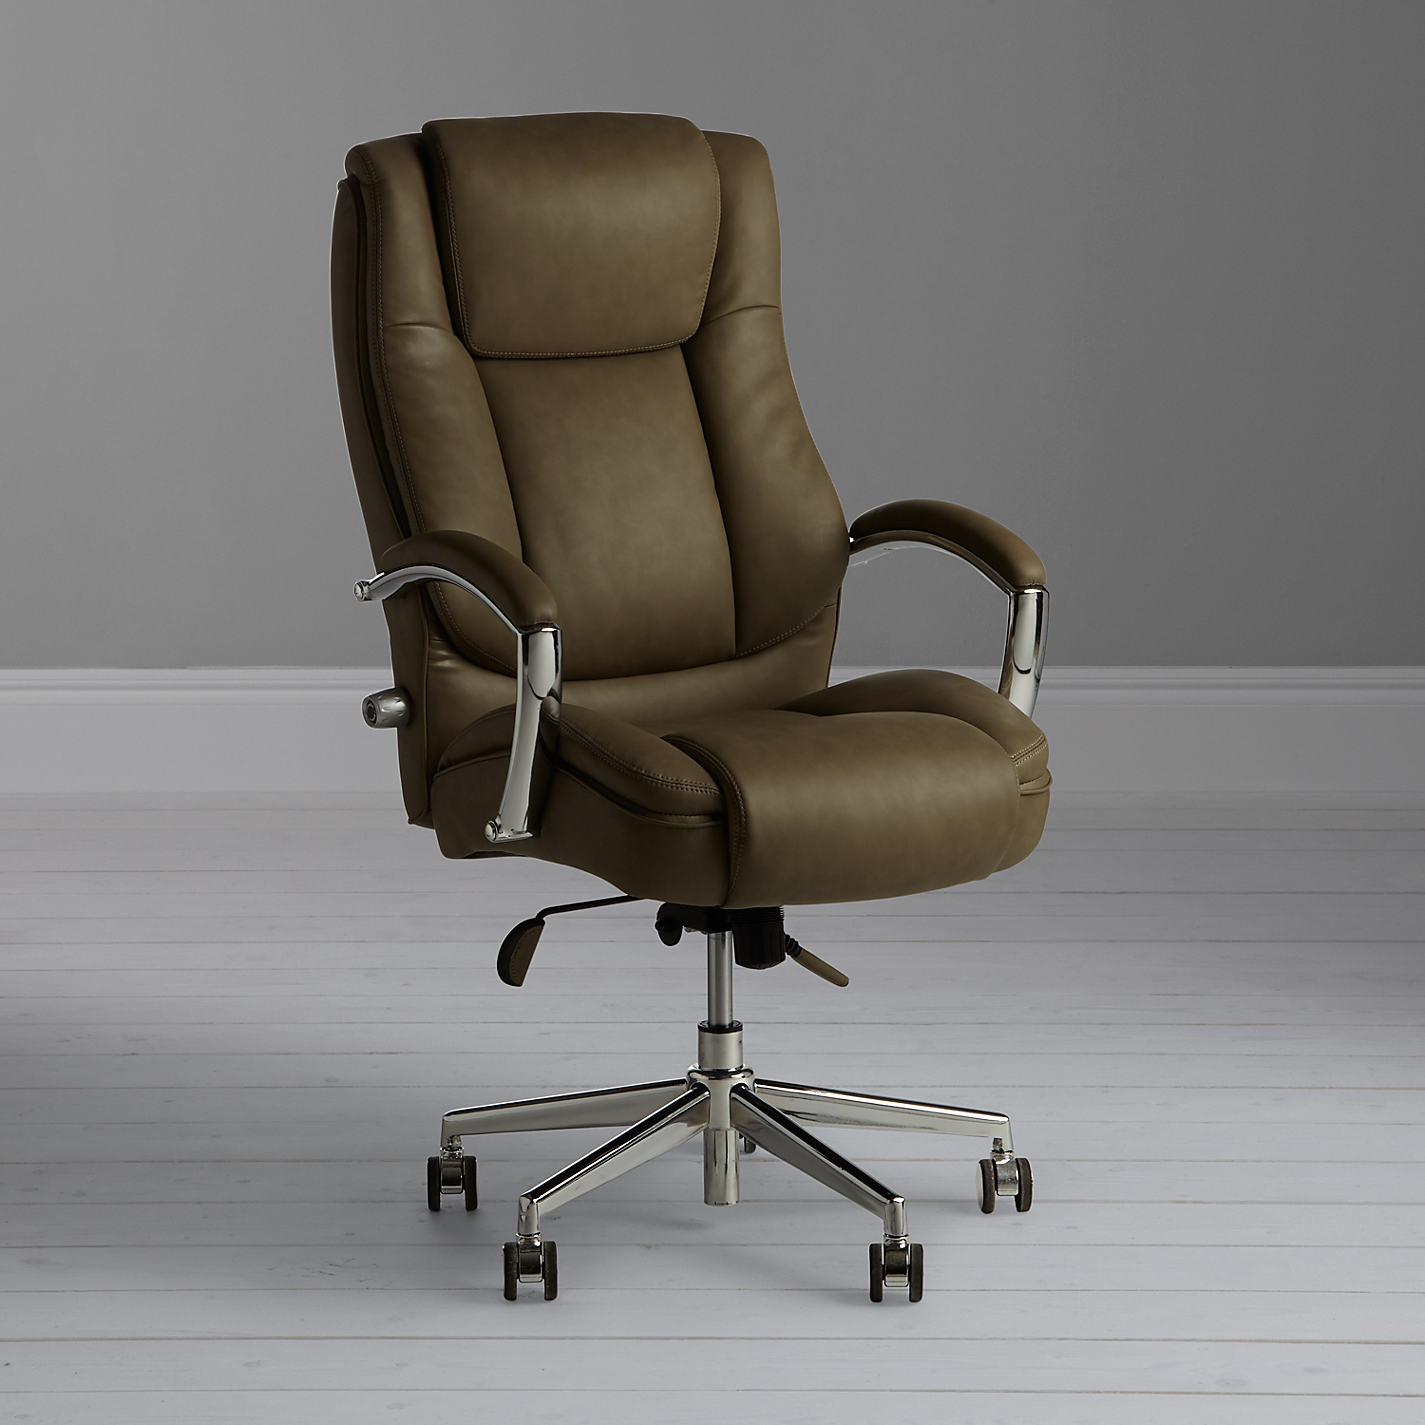 Buy John Lewis Jefferson fice Chair